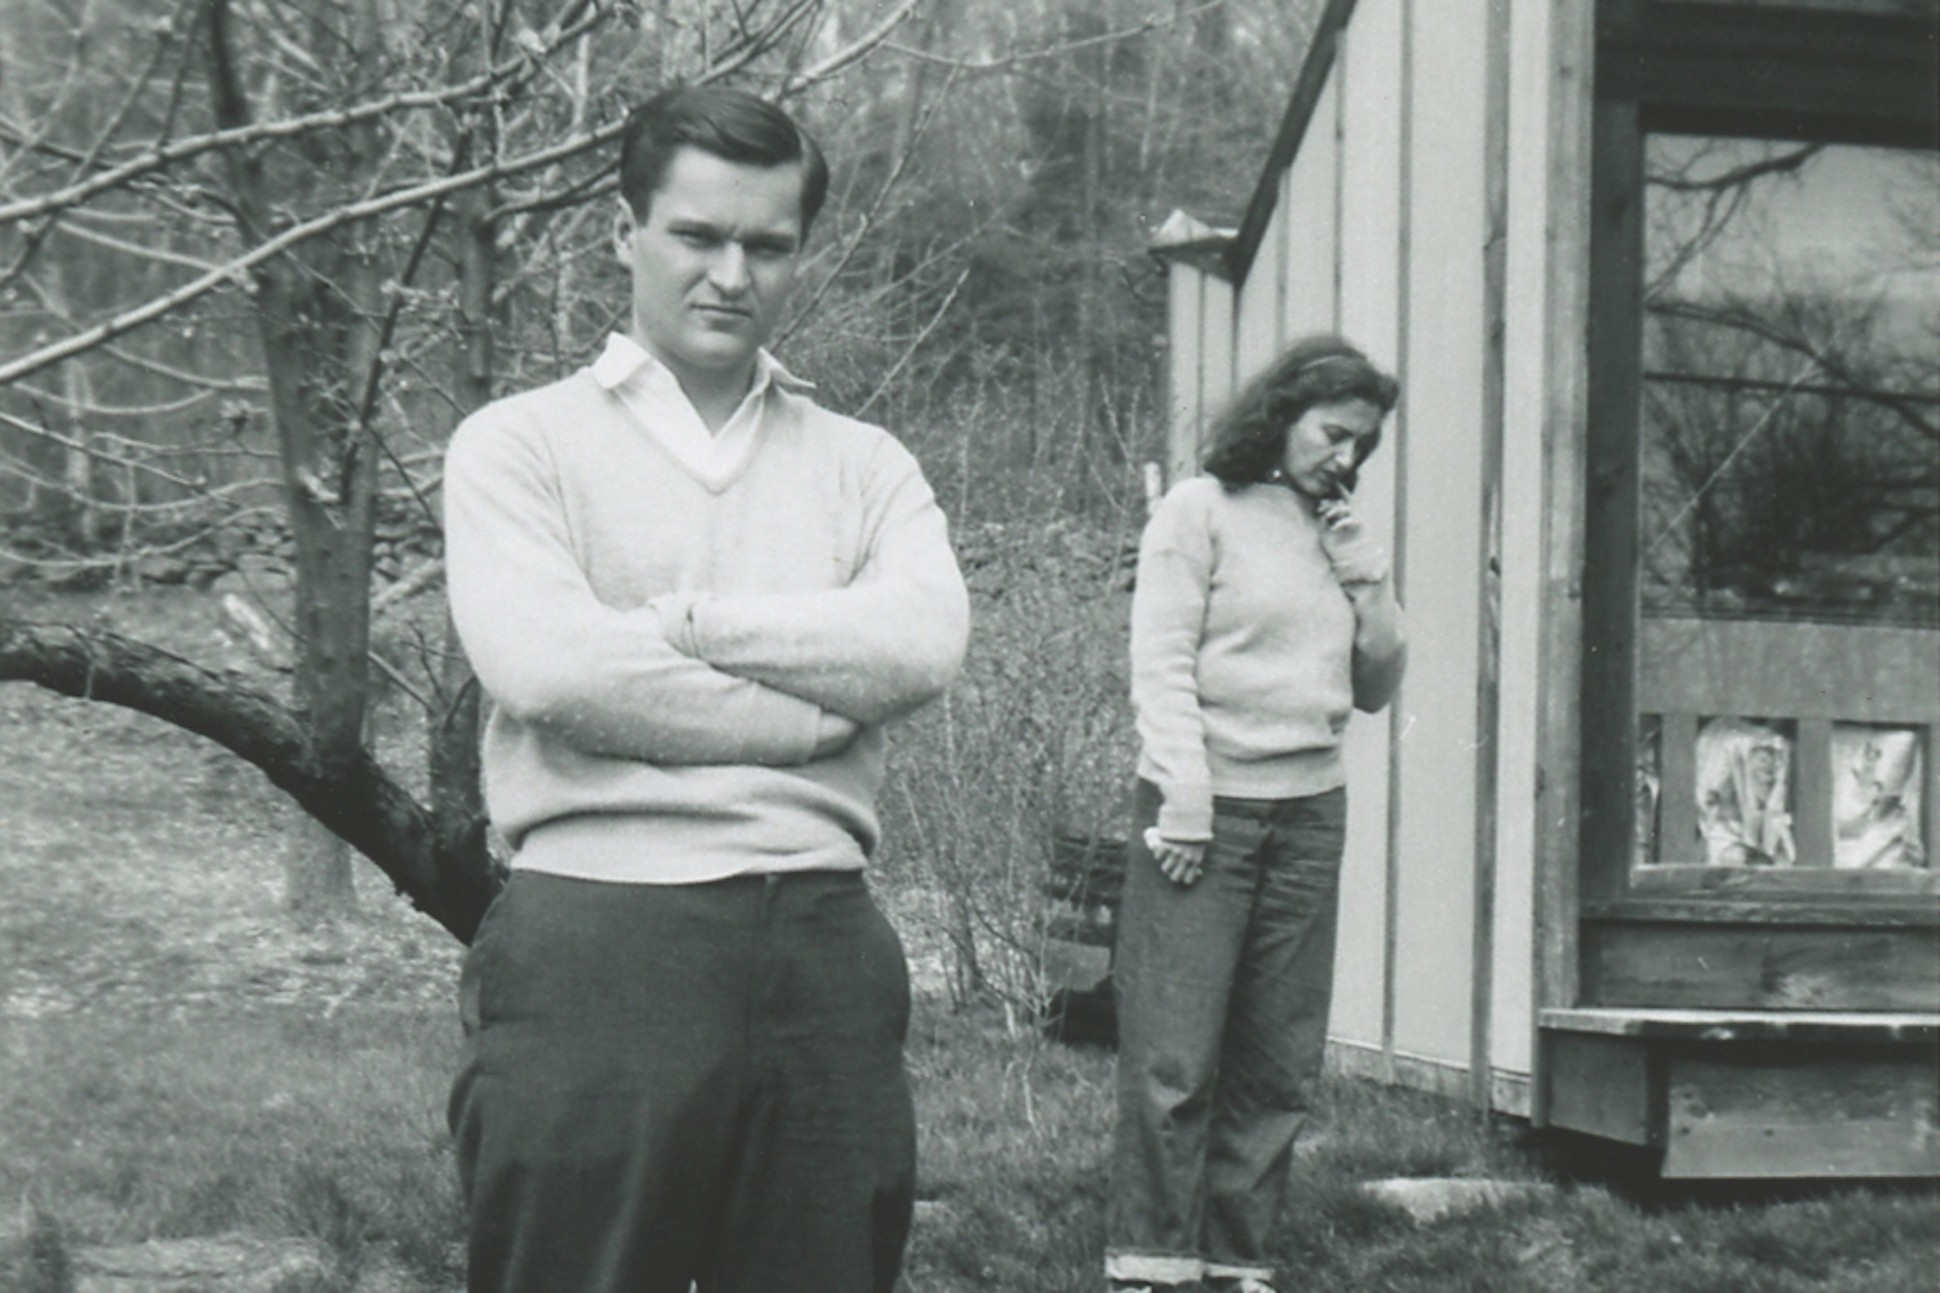 Black and white image of John Ashbery and Jane Freilicher standing near a building in Cornwall, Connecticut in 1954.